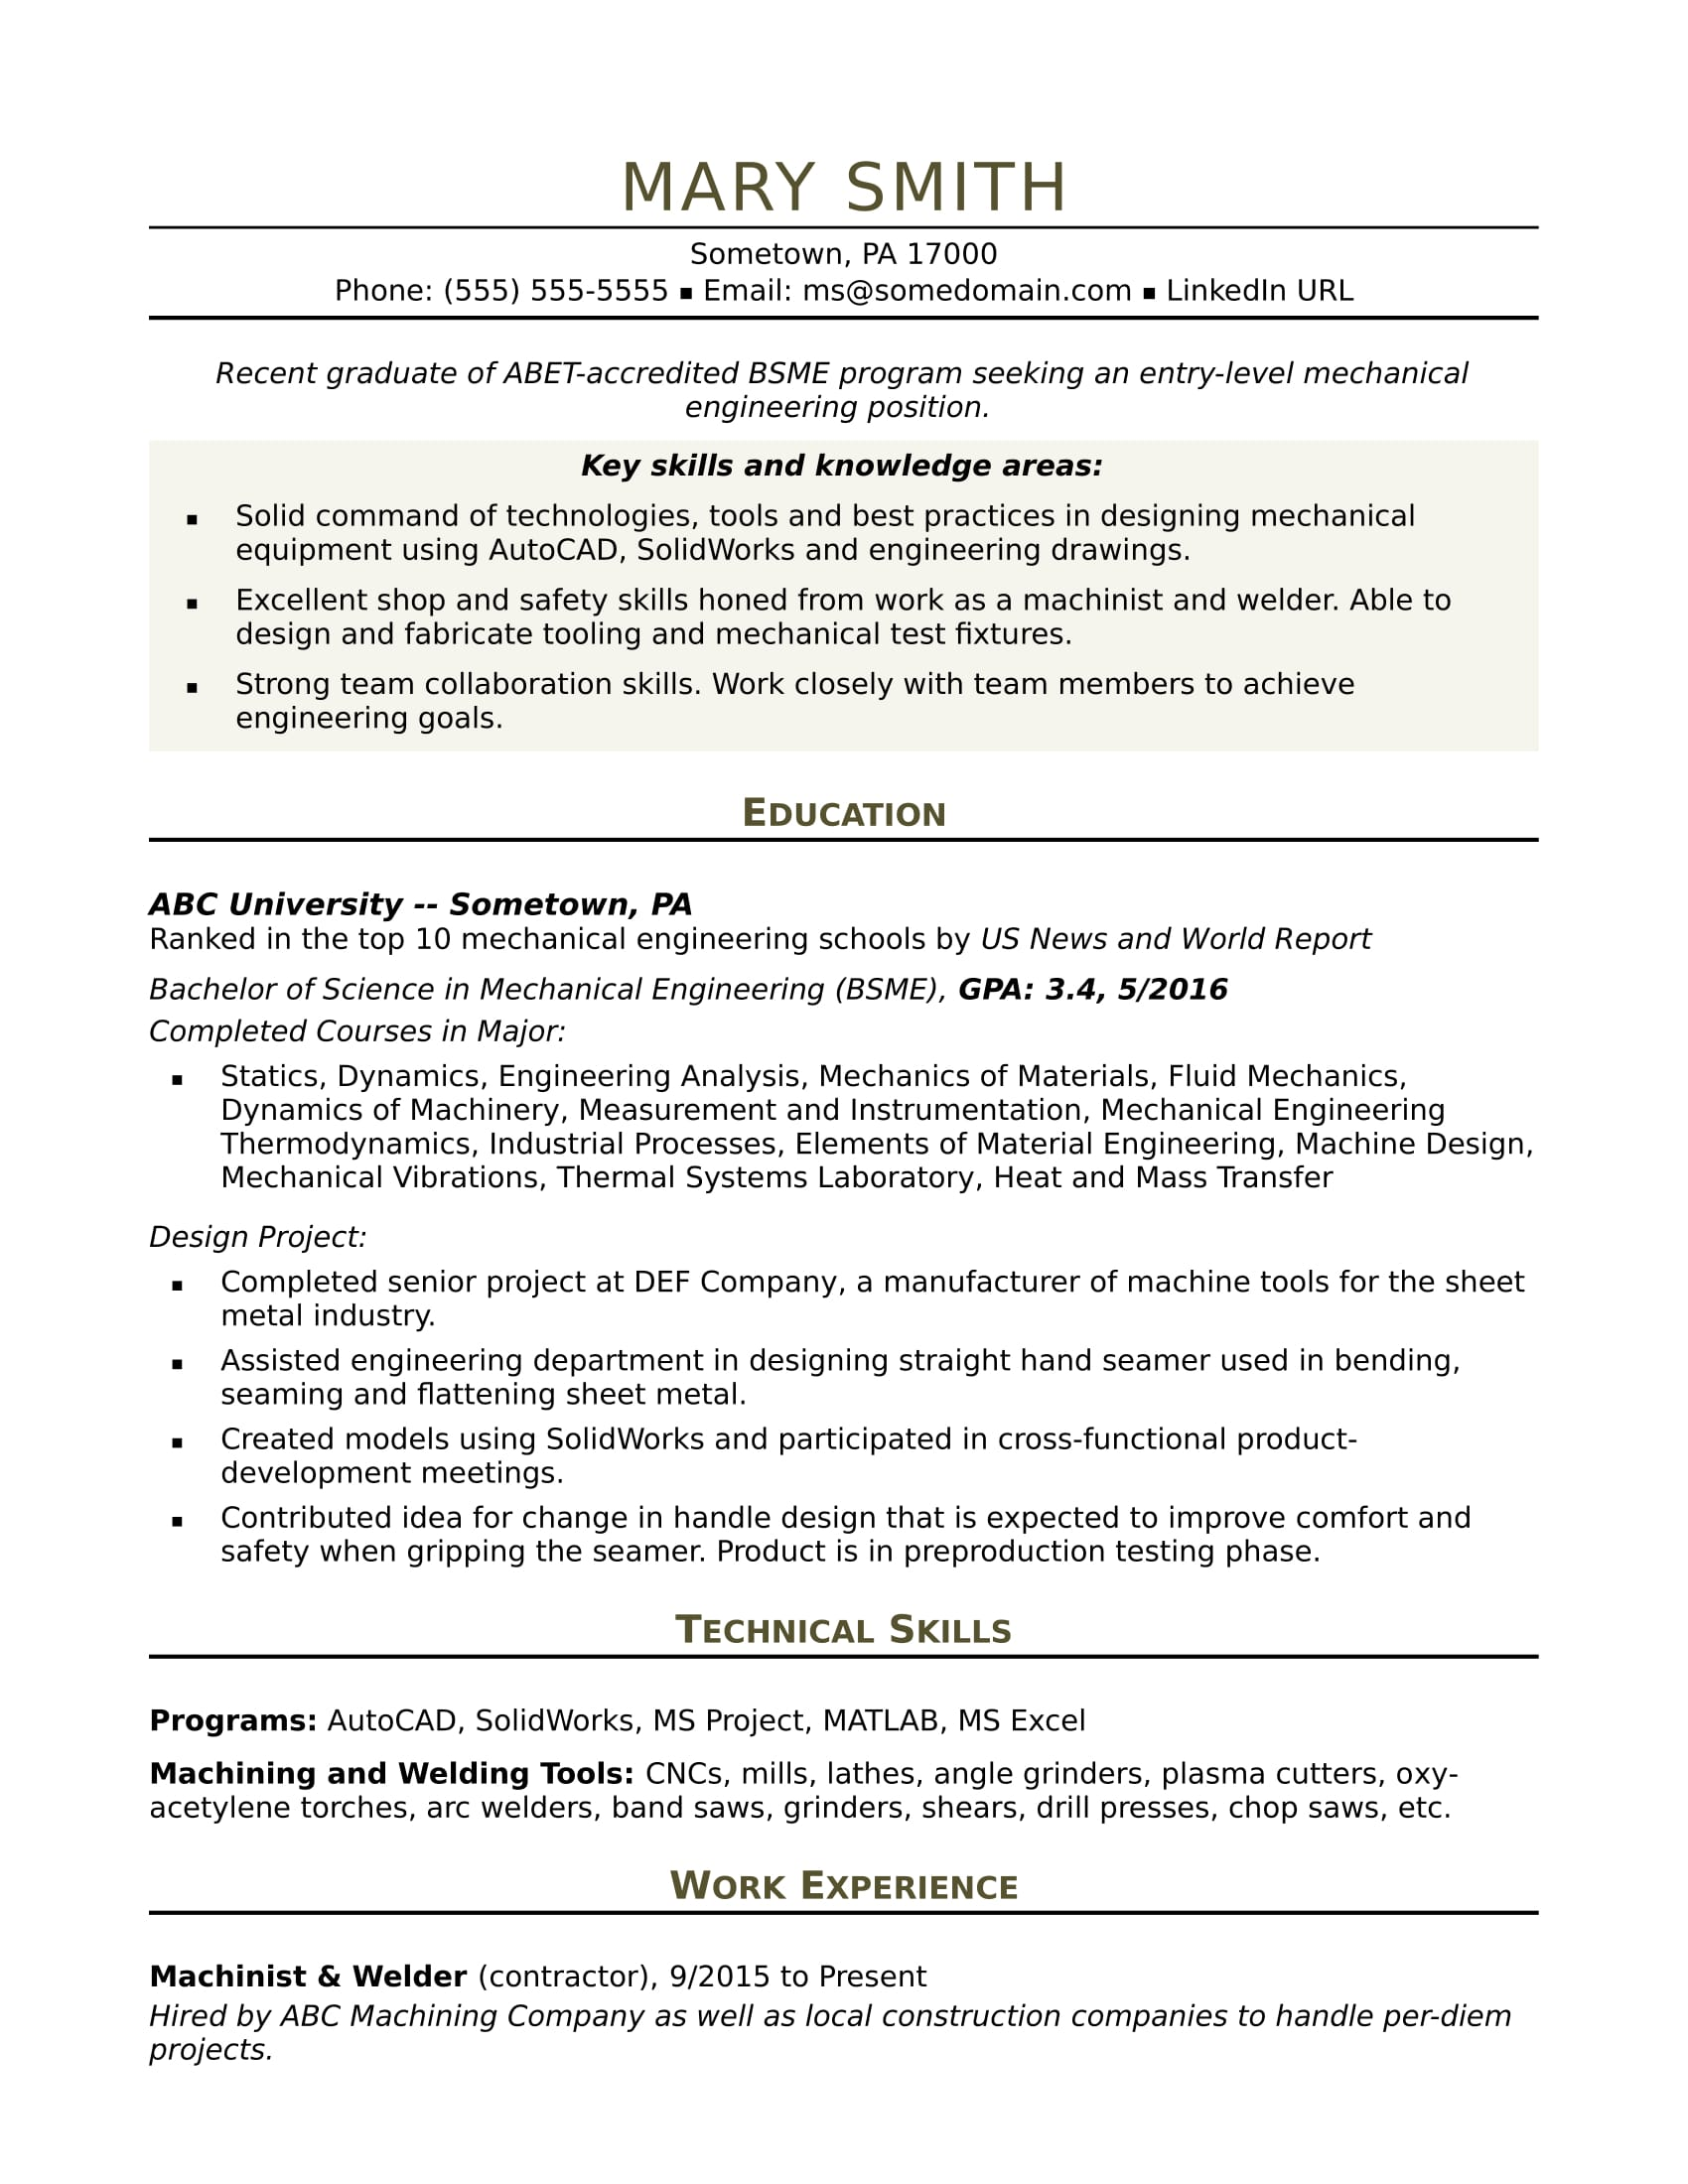 sample resume for an entry level mechanical engineer monster fresh graduate without work Resume Sample Resume For Fresh Graduate Without Work Experience